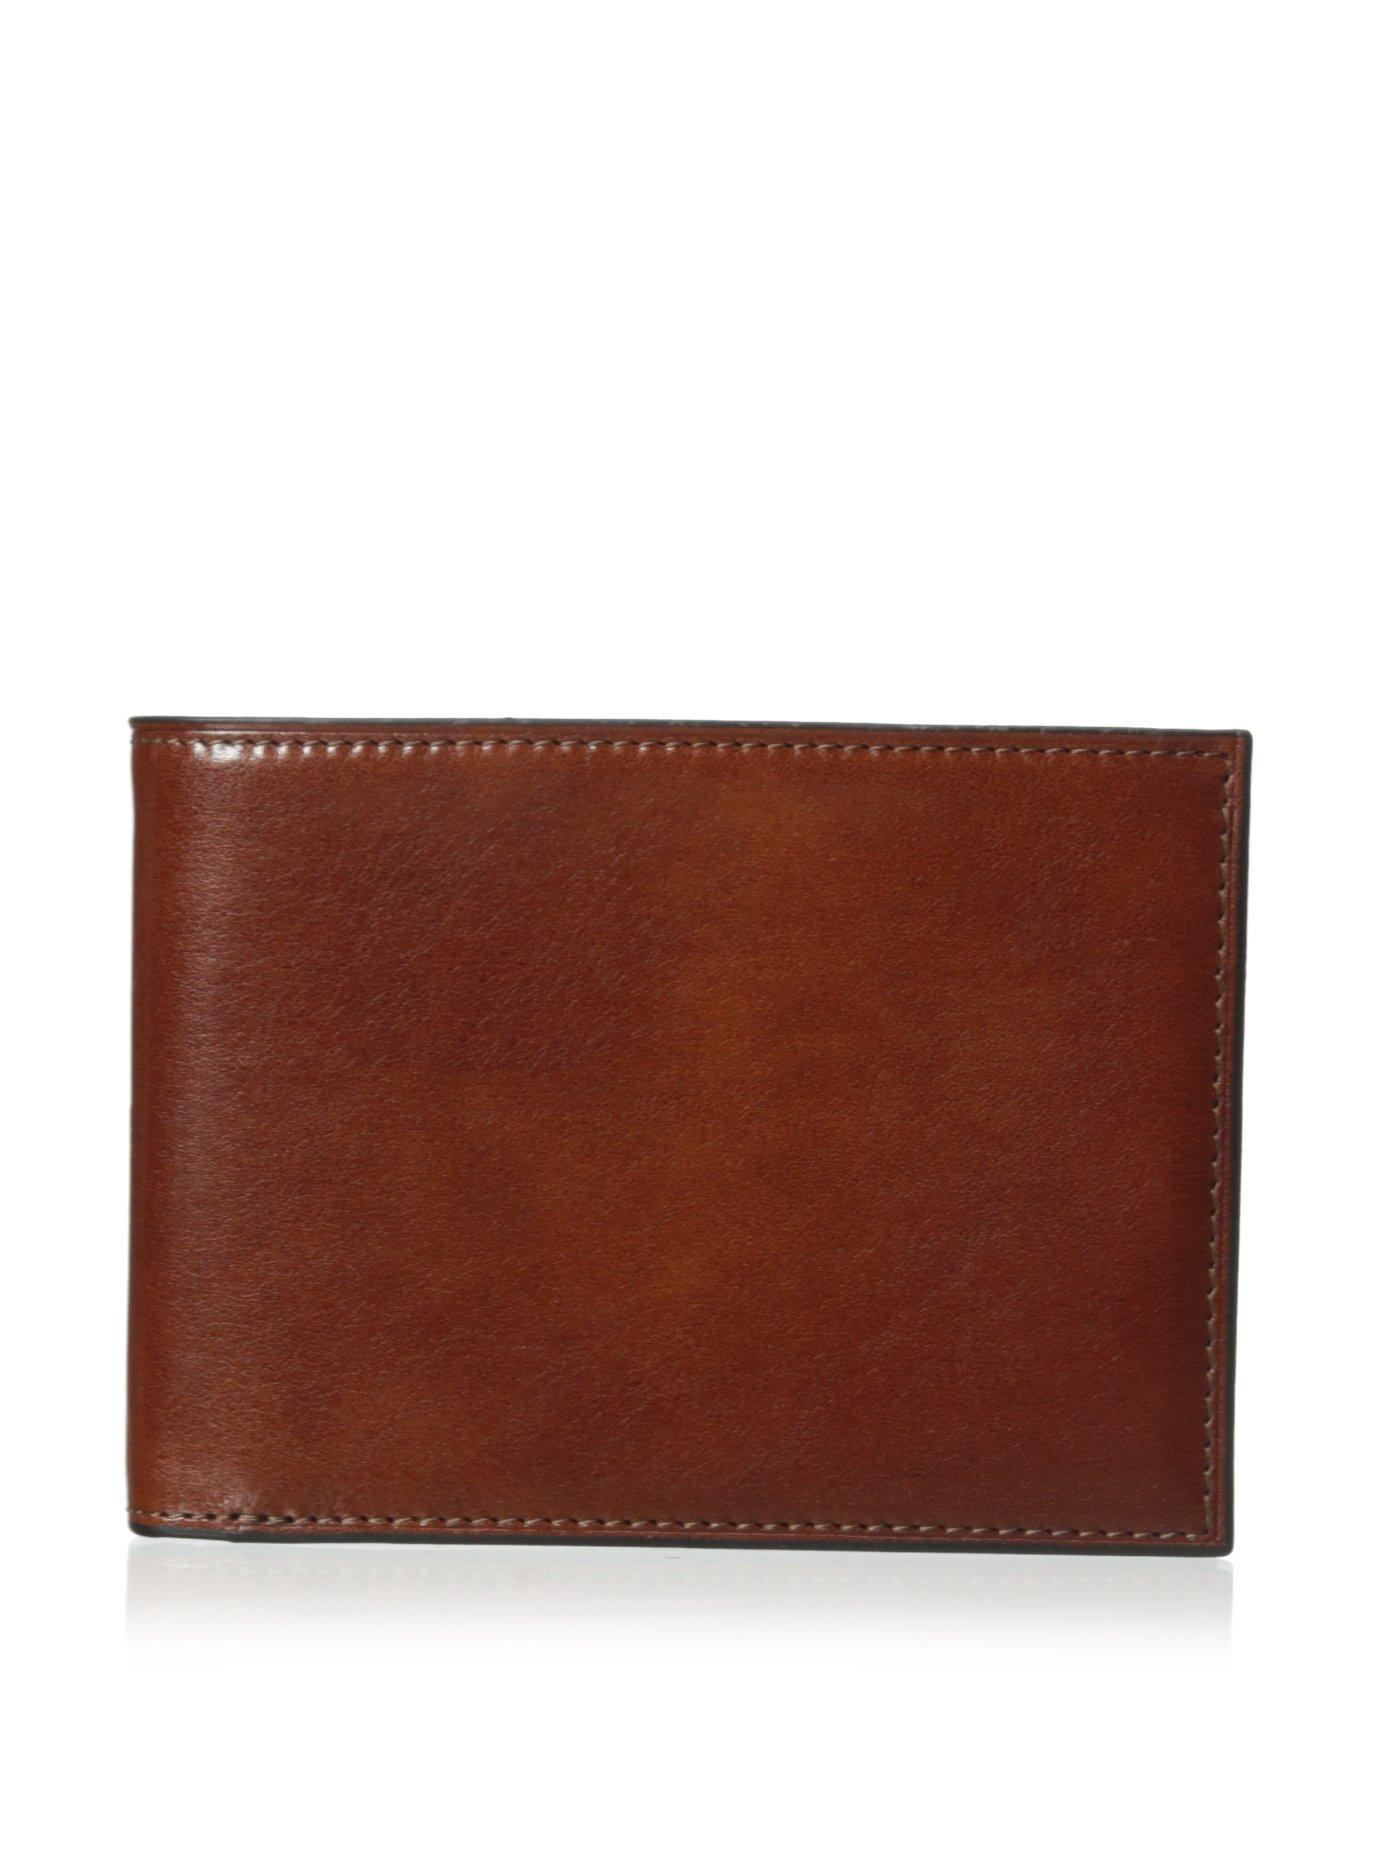 Old Leather Credit Wallet with I.D. Passcase